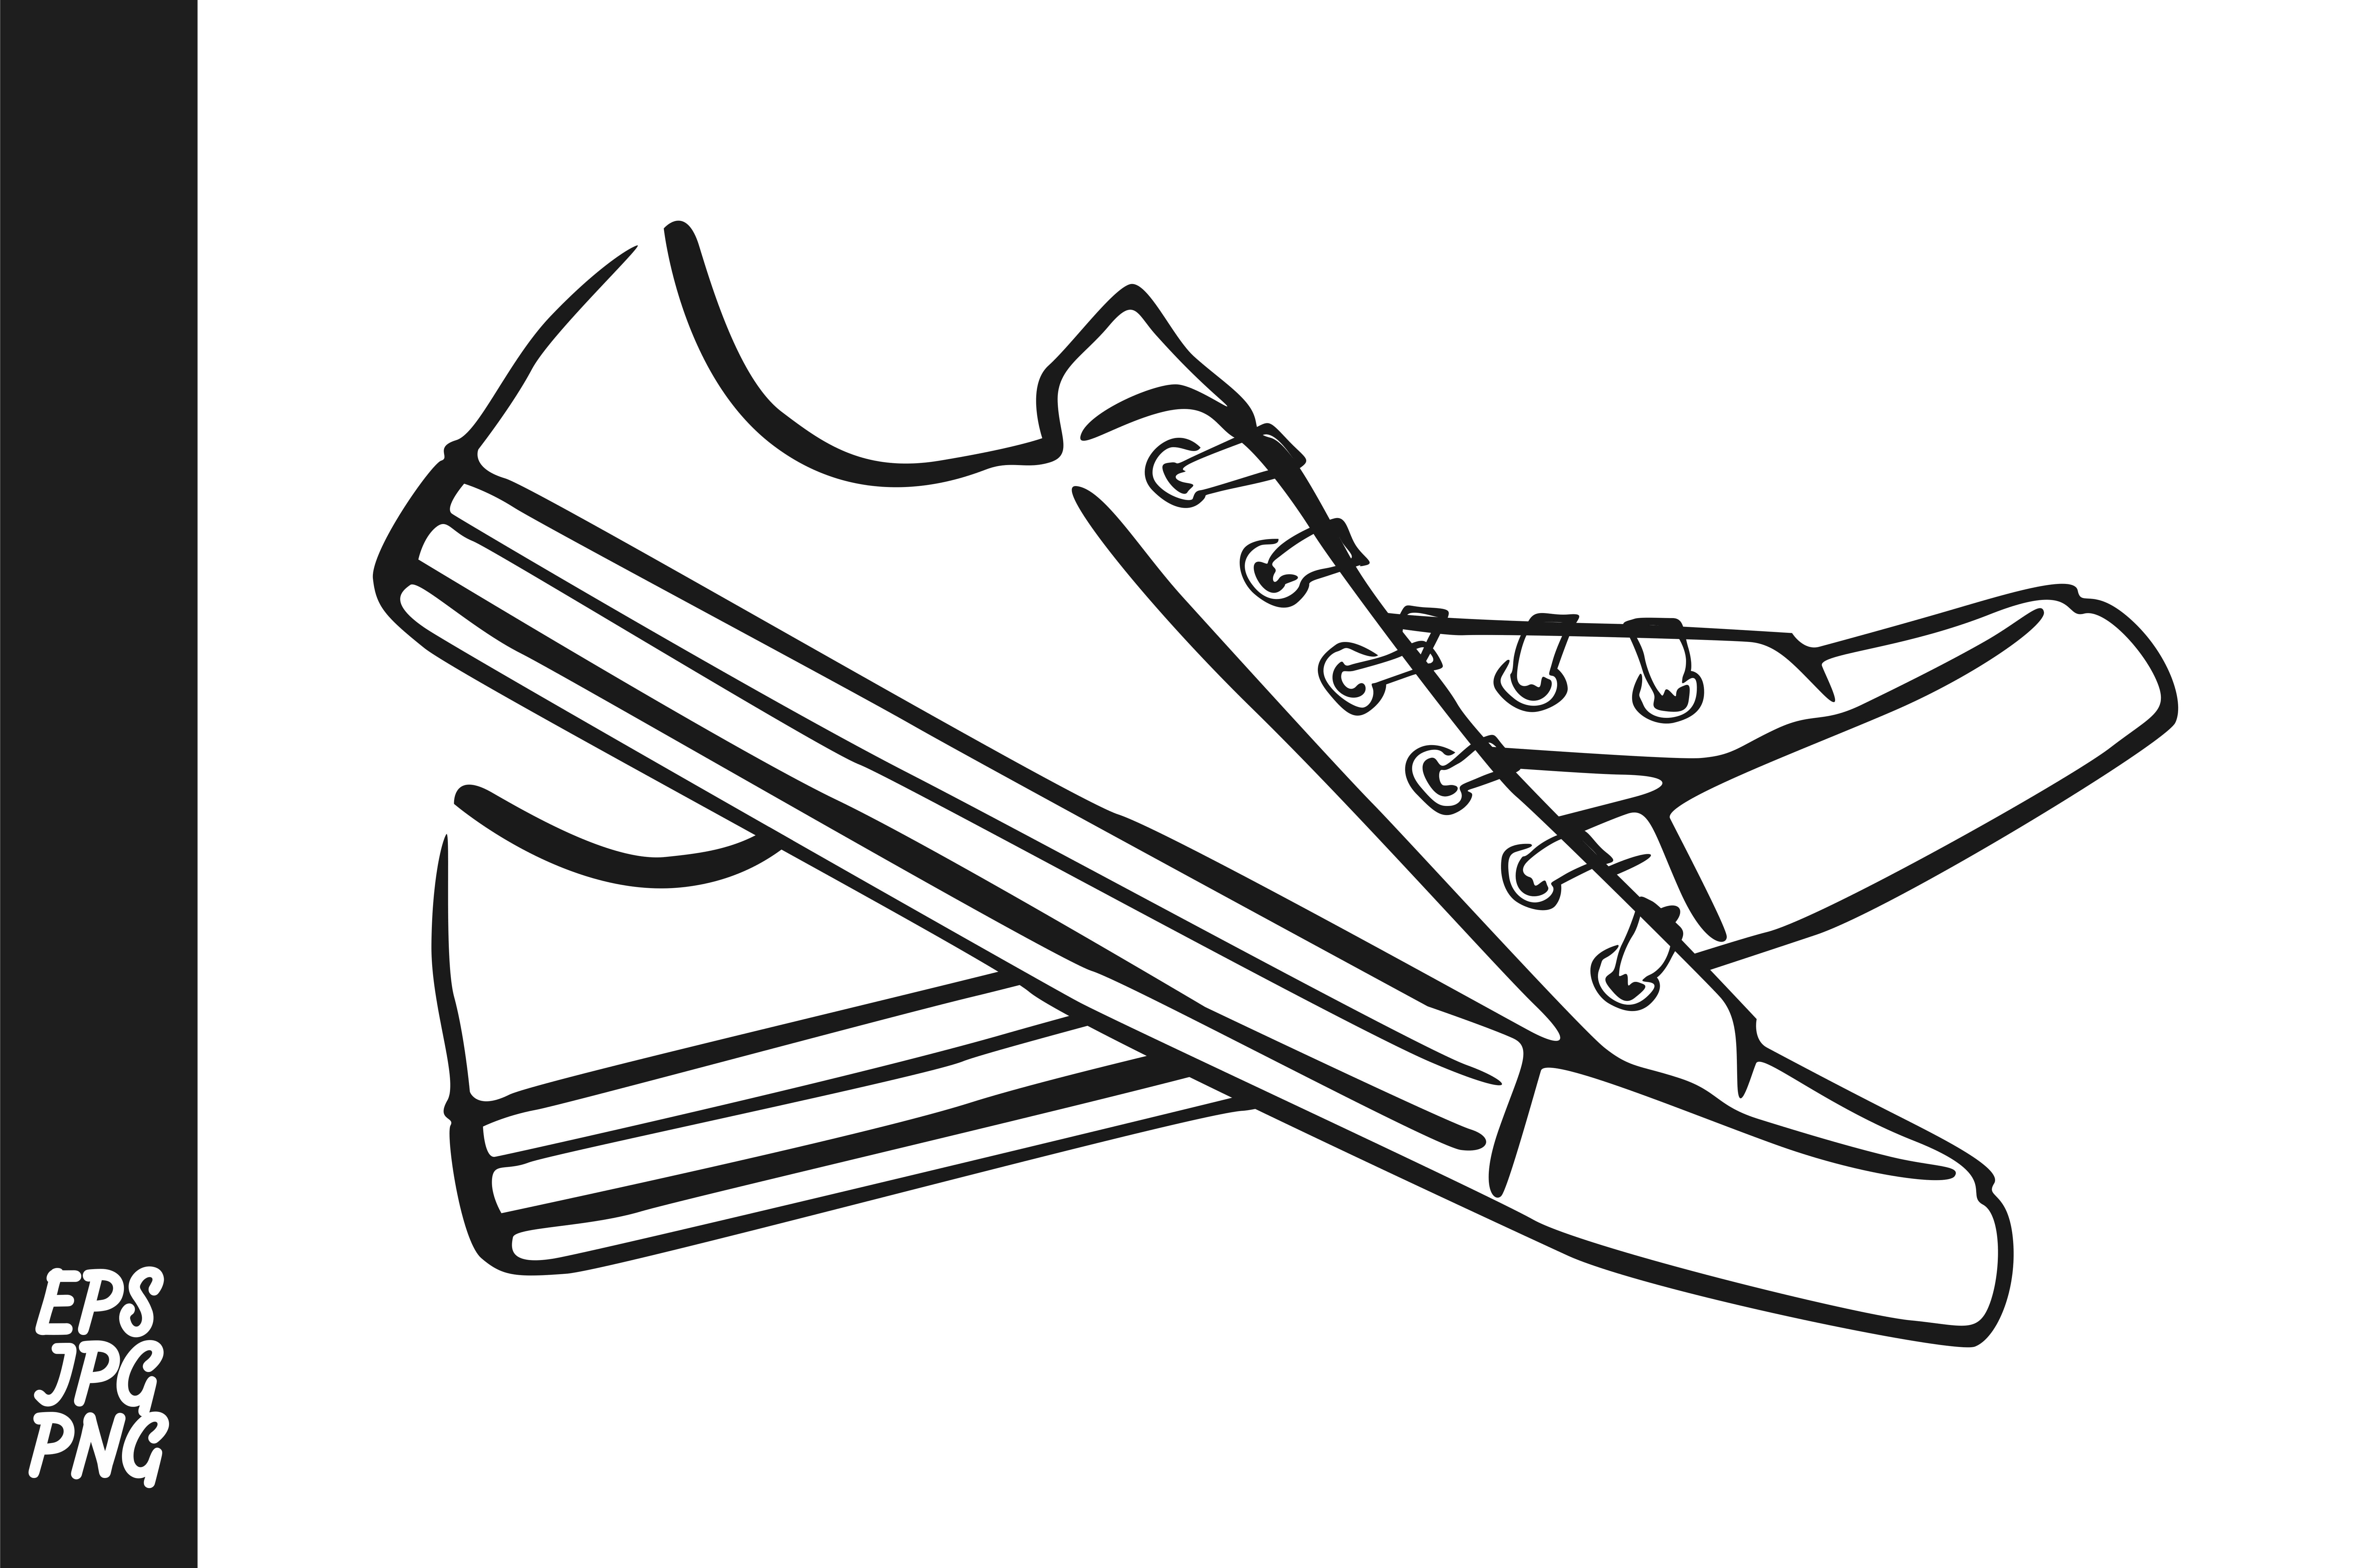 Download Free Shoes Line Art Graphic By Arief Sapta Adjie Creative Fabrica for Cricut Explore, Silhouette and other cutting machines.